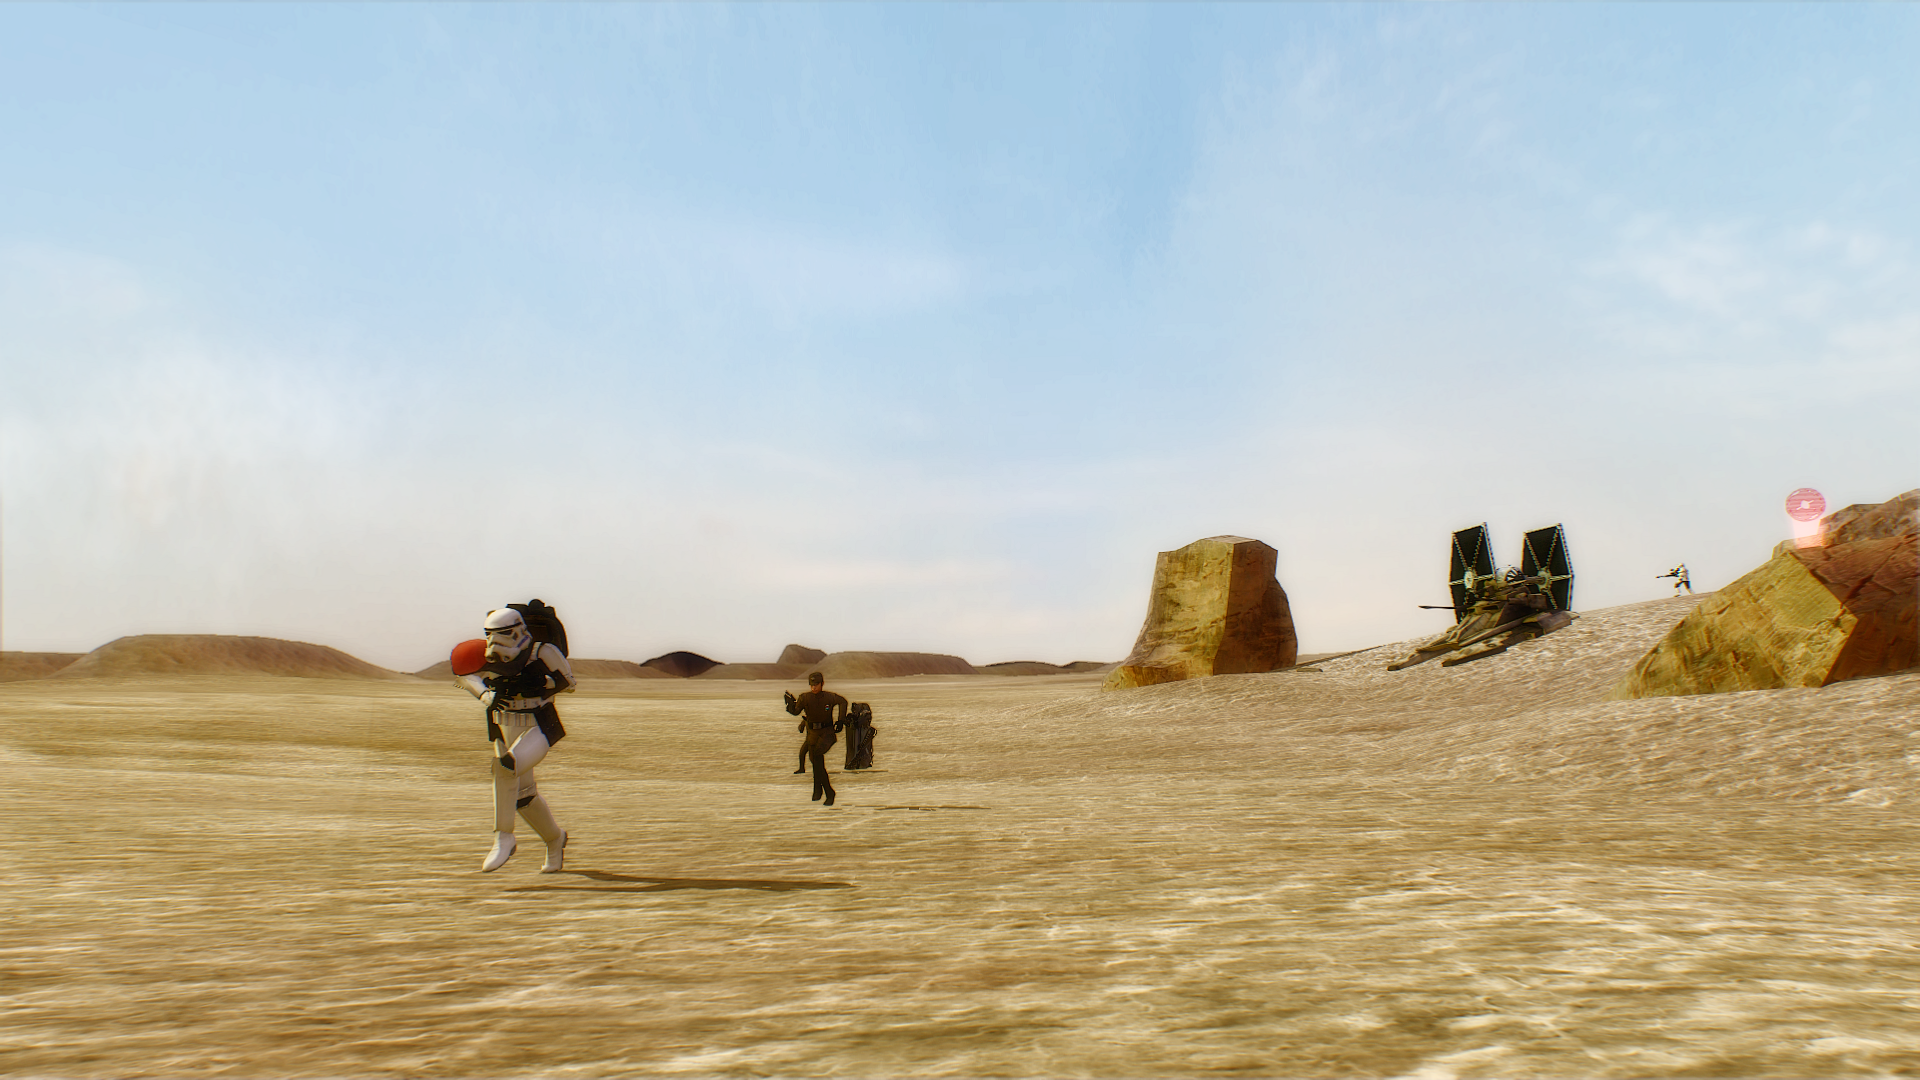 Tatooine Dune Sea Battlefront 2 HD